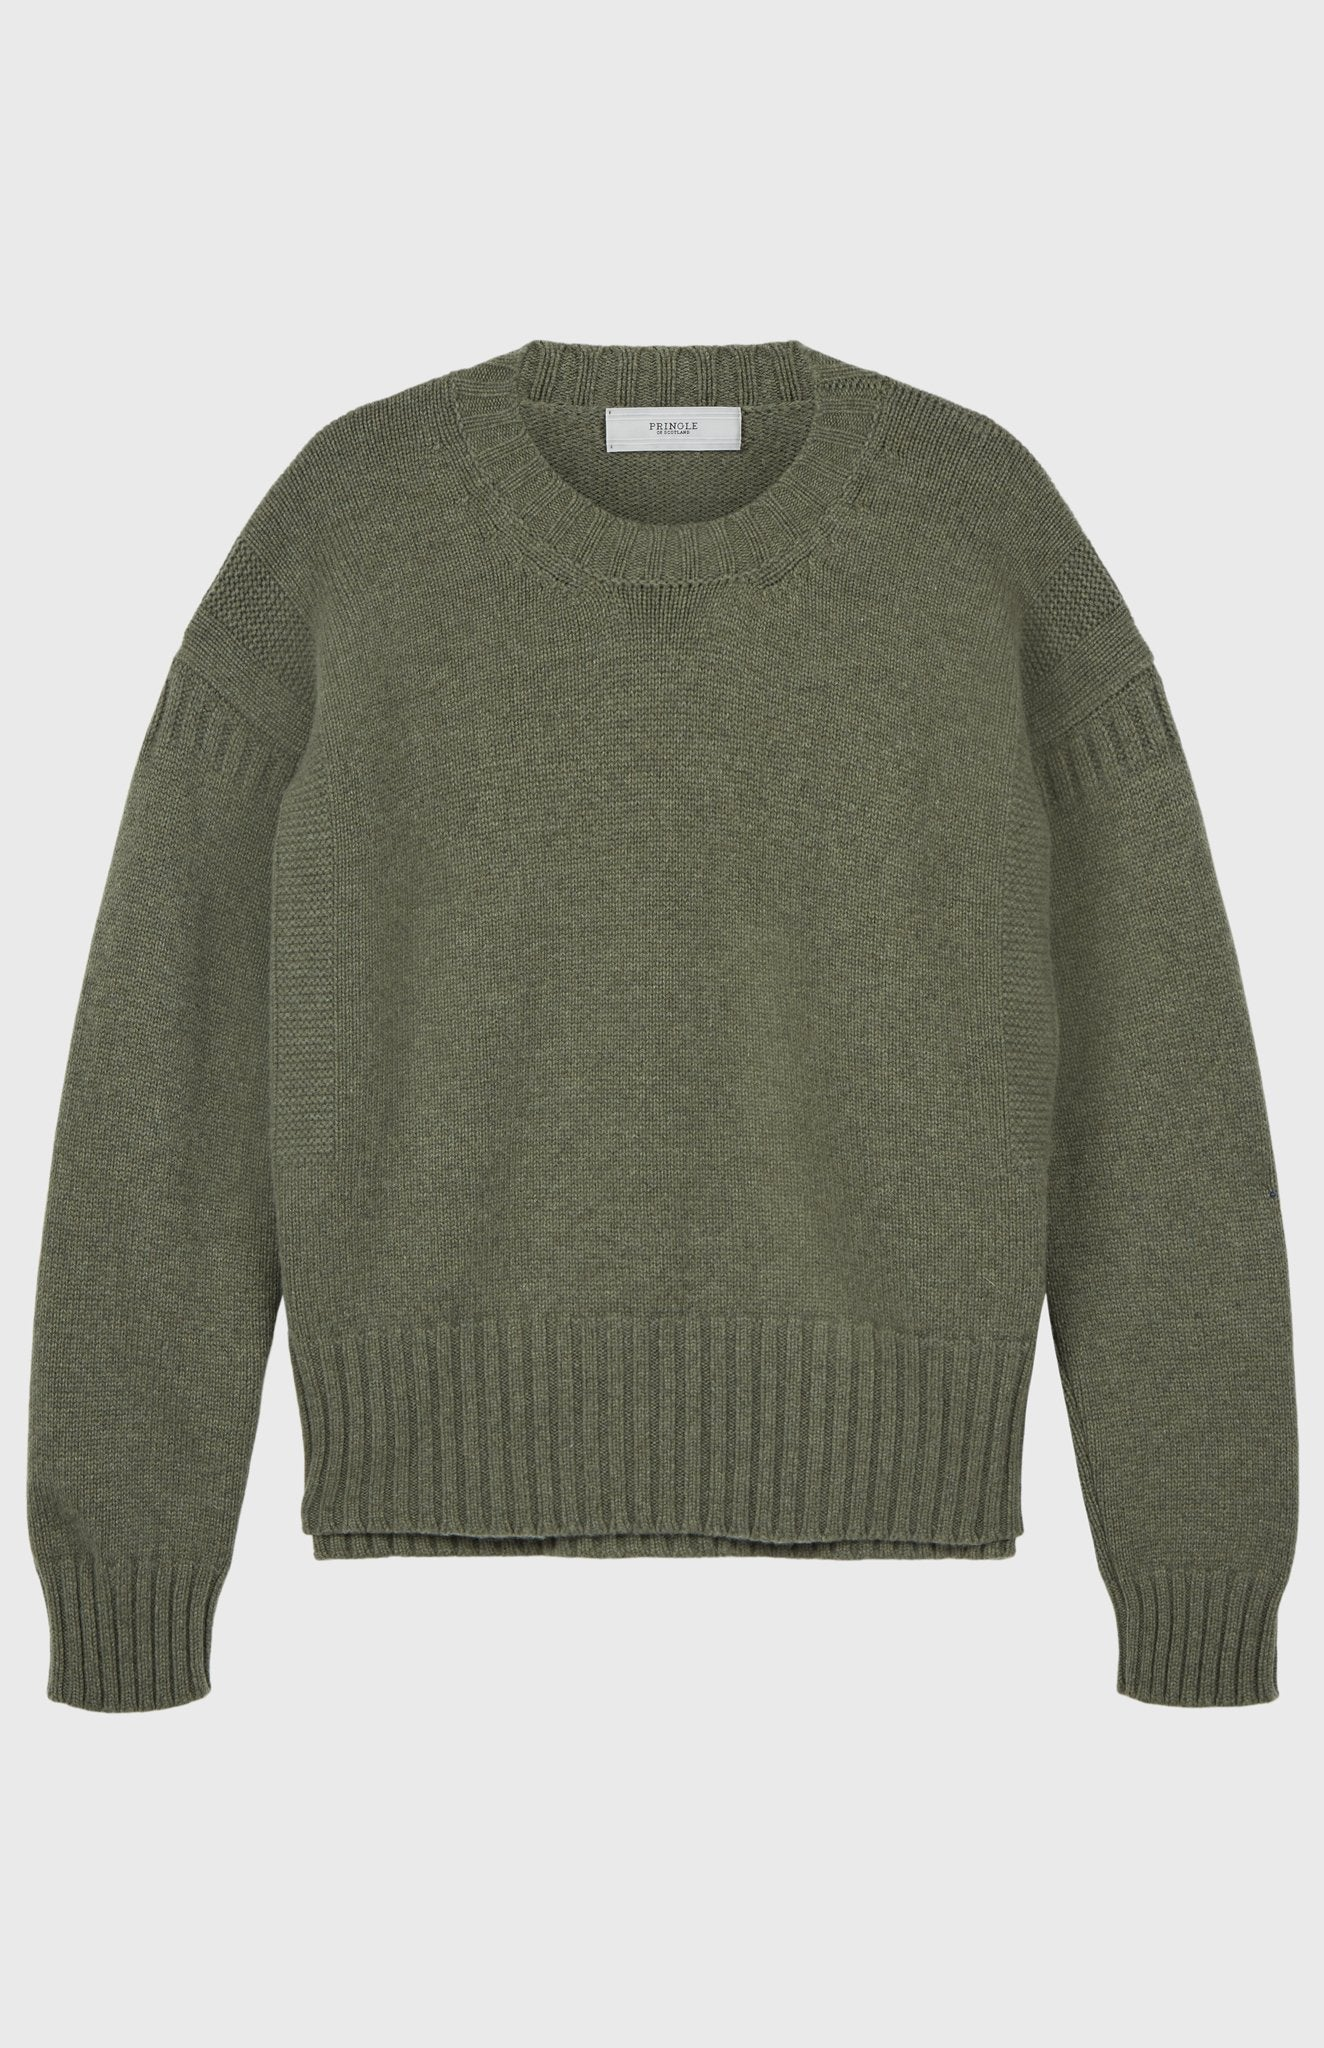 Guernsey Stitch Round Neck Jumper in Moss